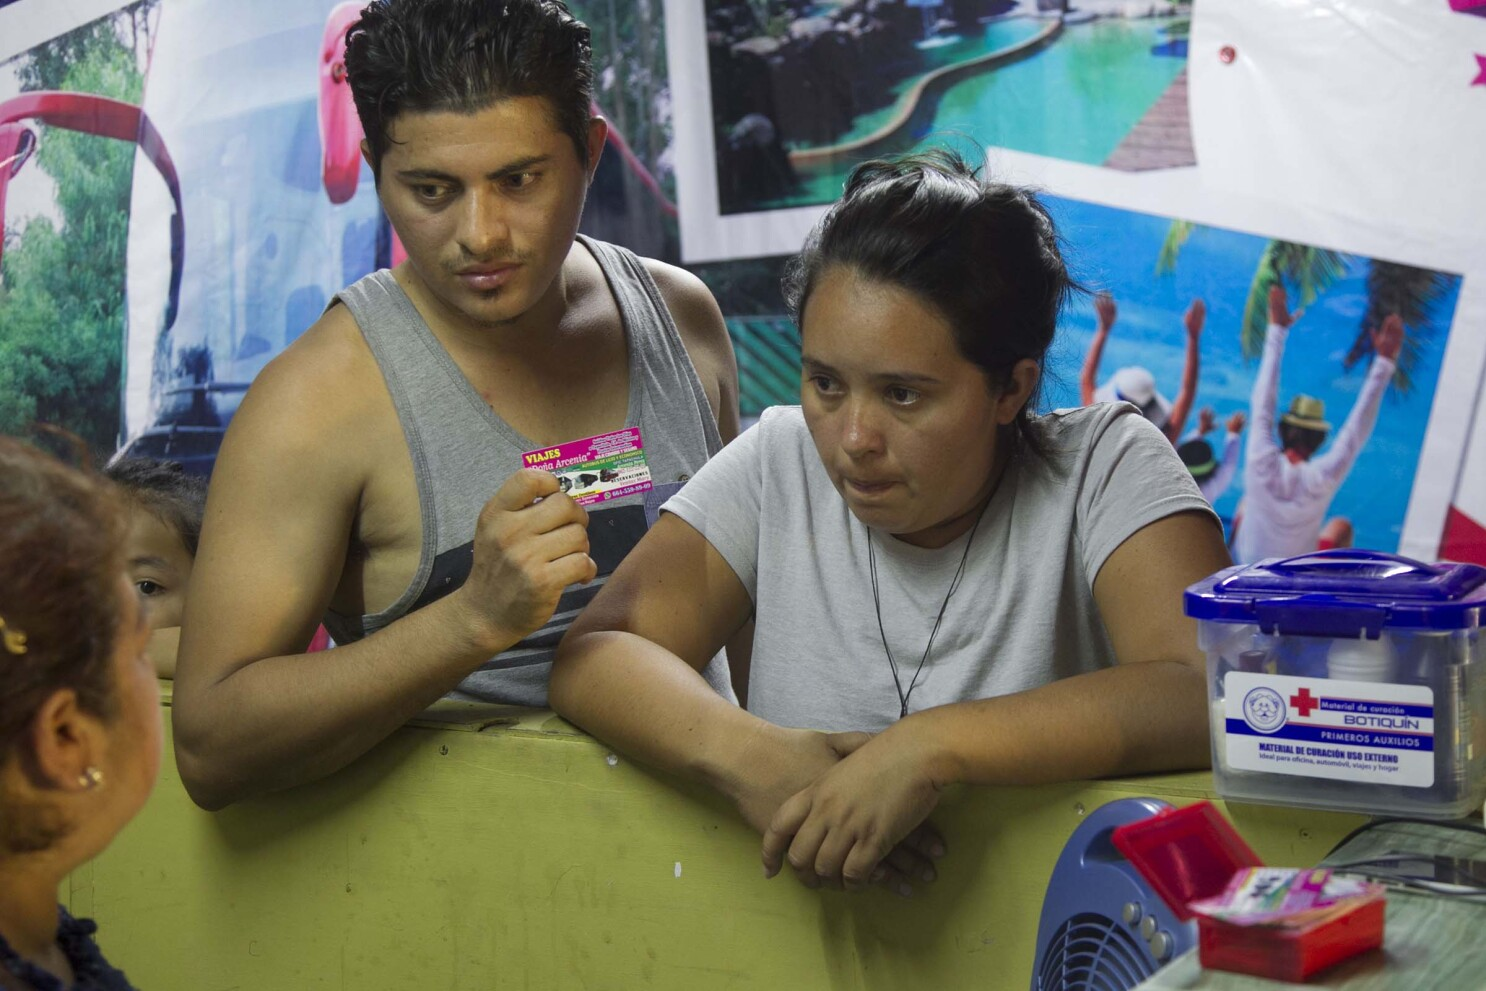 Central American migrants are giving up on asylum; returning home